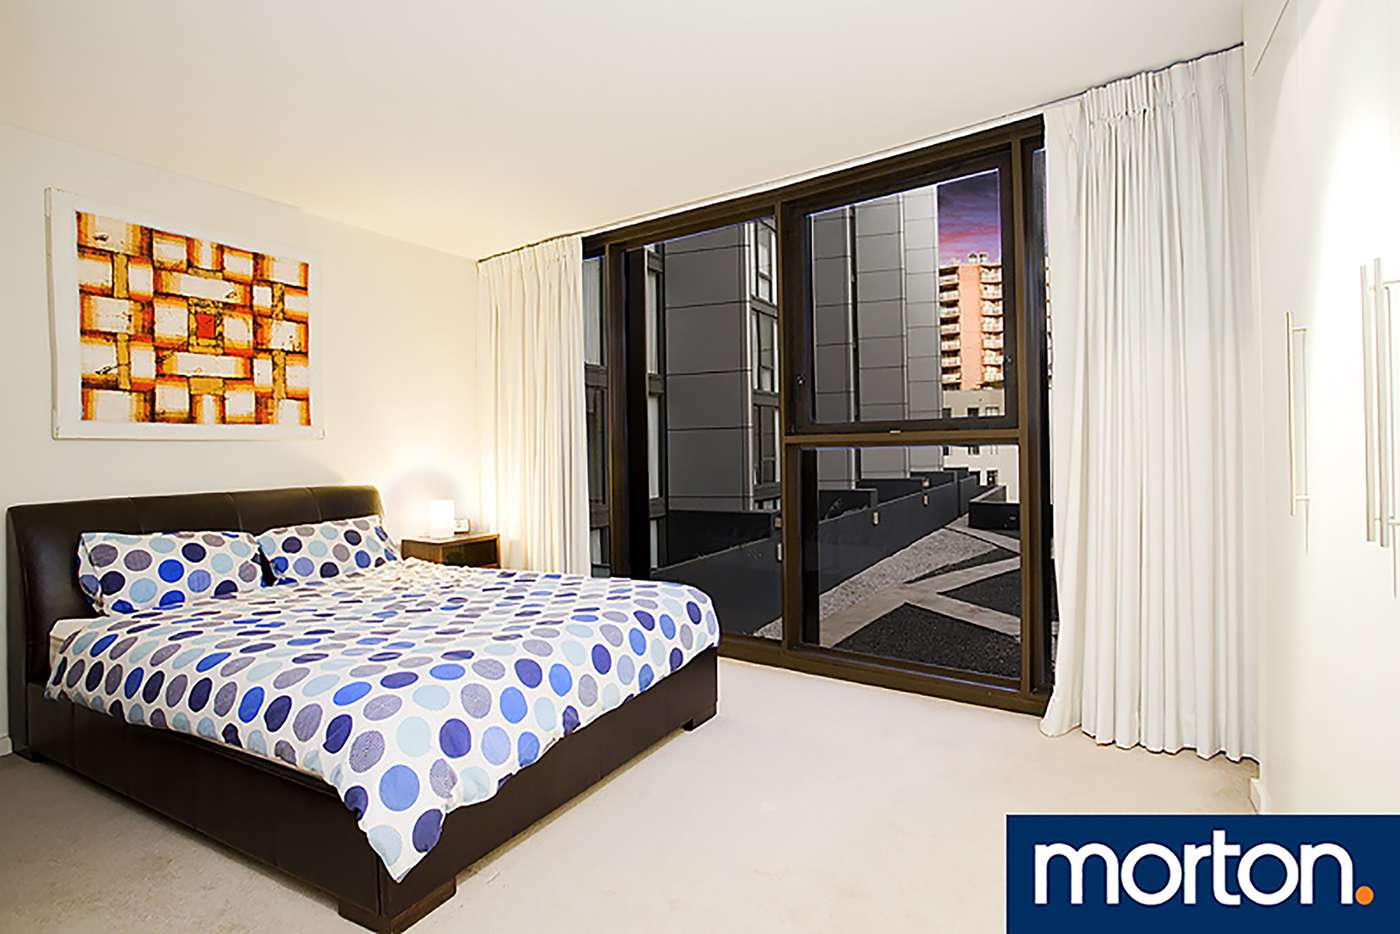 Fifth view of Homely apartment listing, 409/20 Pelican Street, Darlinghurst NSW 2010